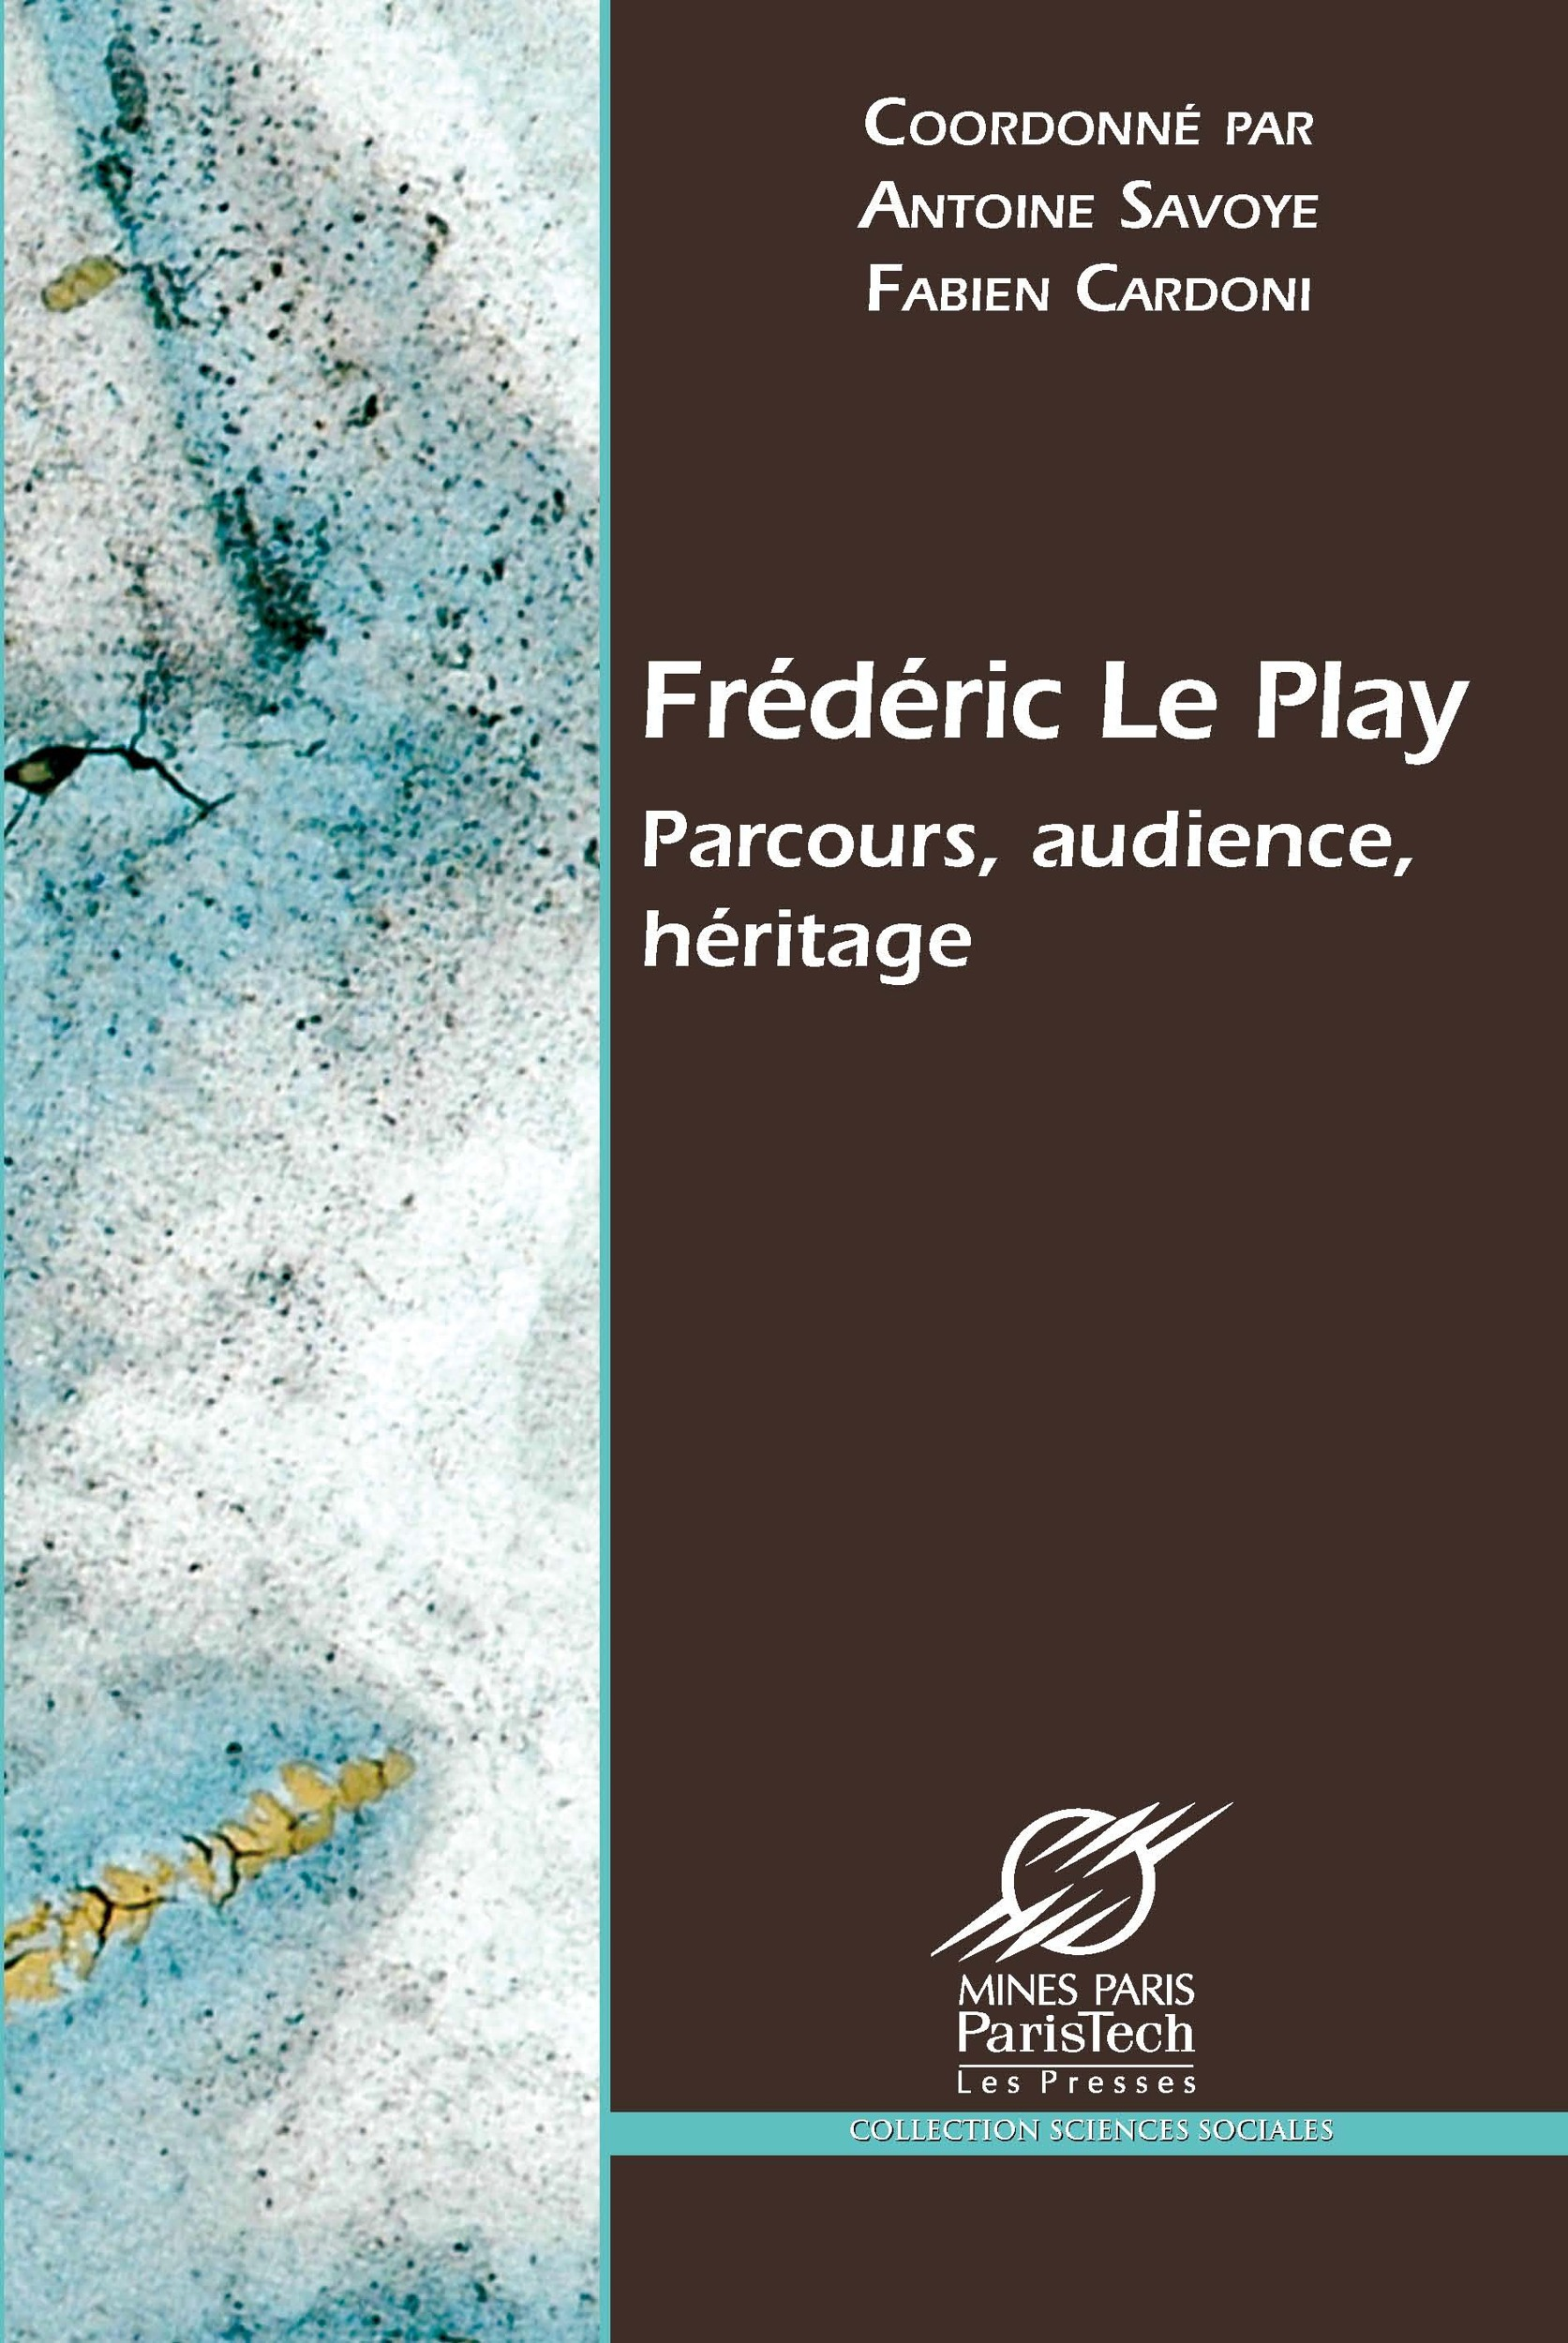 Frederic le play - parcours, audience, heritage